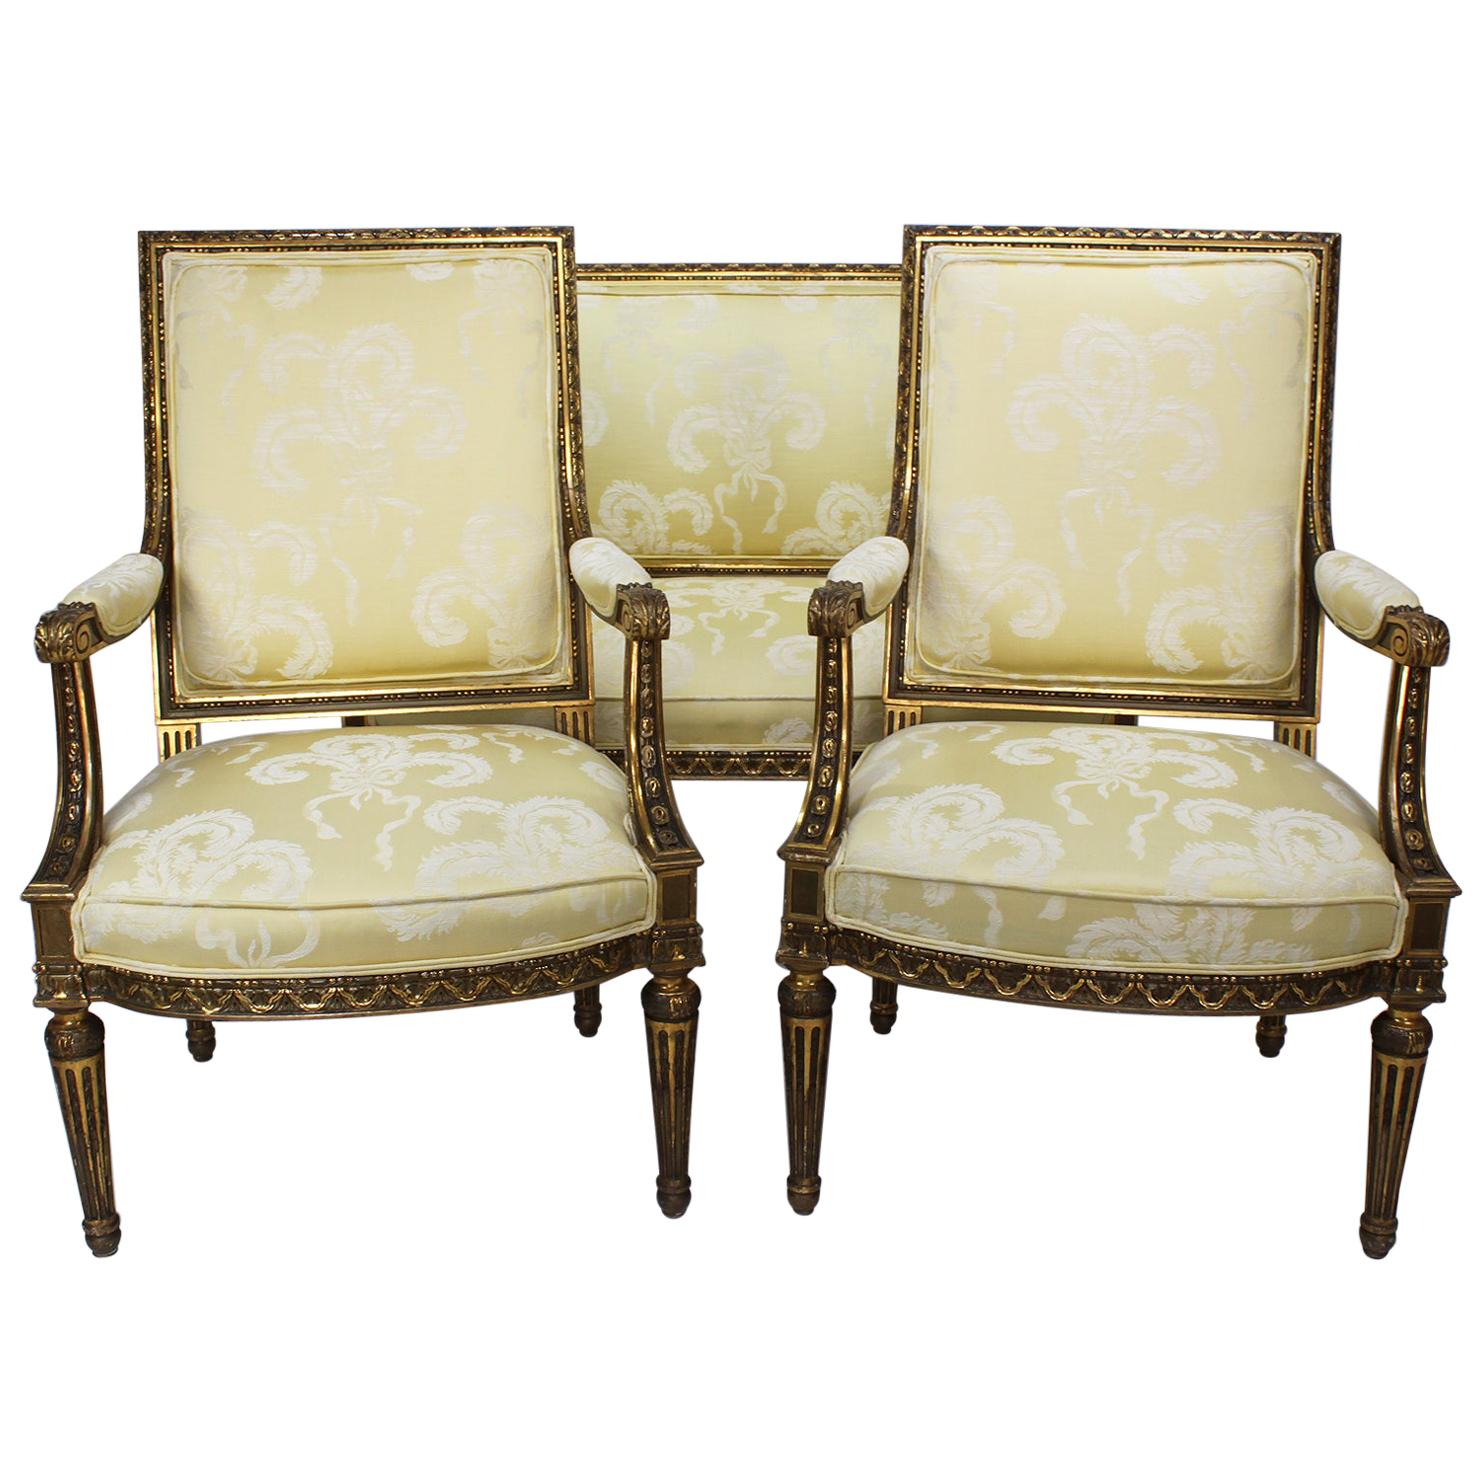 French Louis XVI Style Giltwood Carved Three-Piece Salon or Parlor Suite